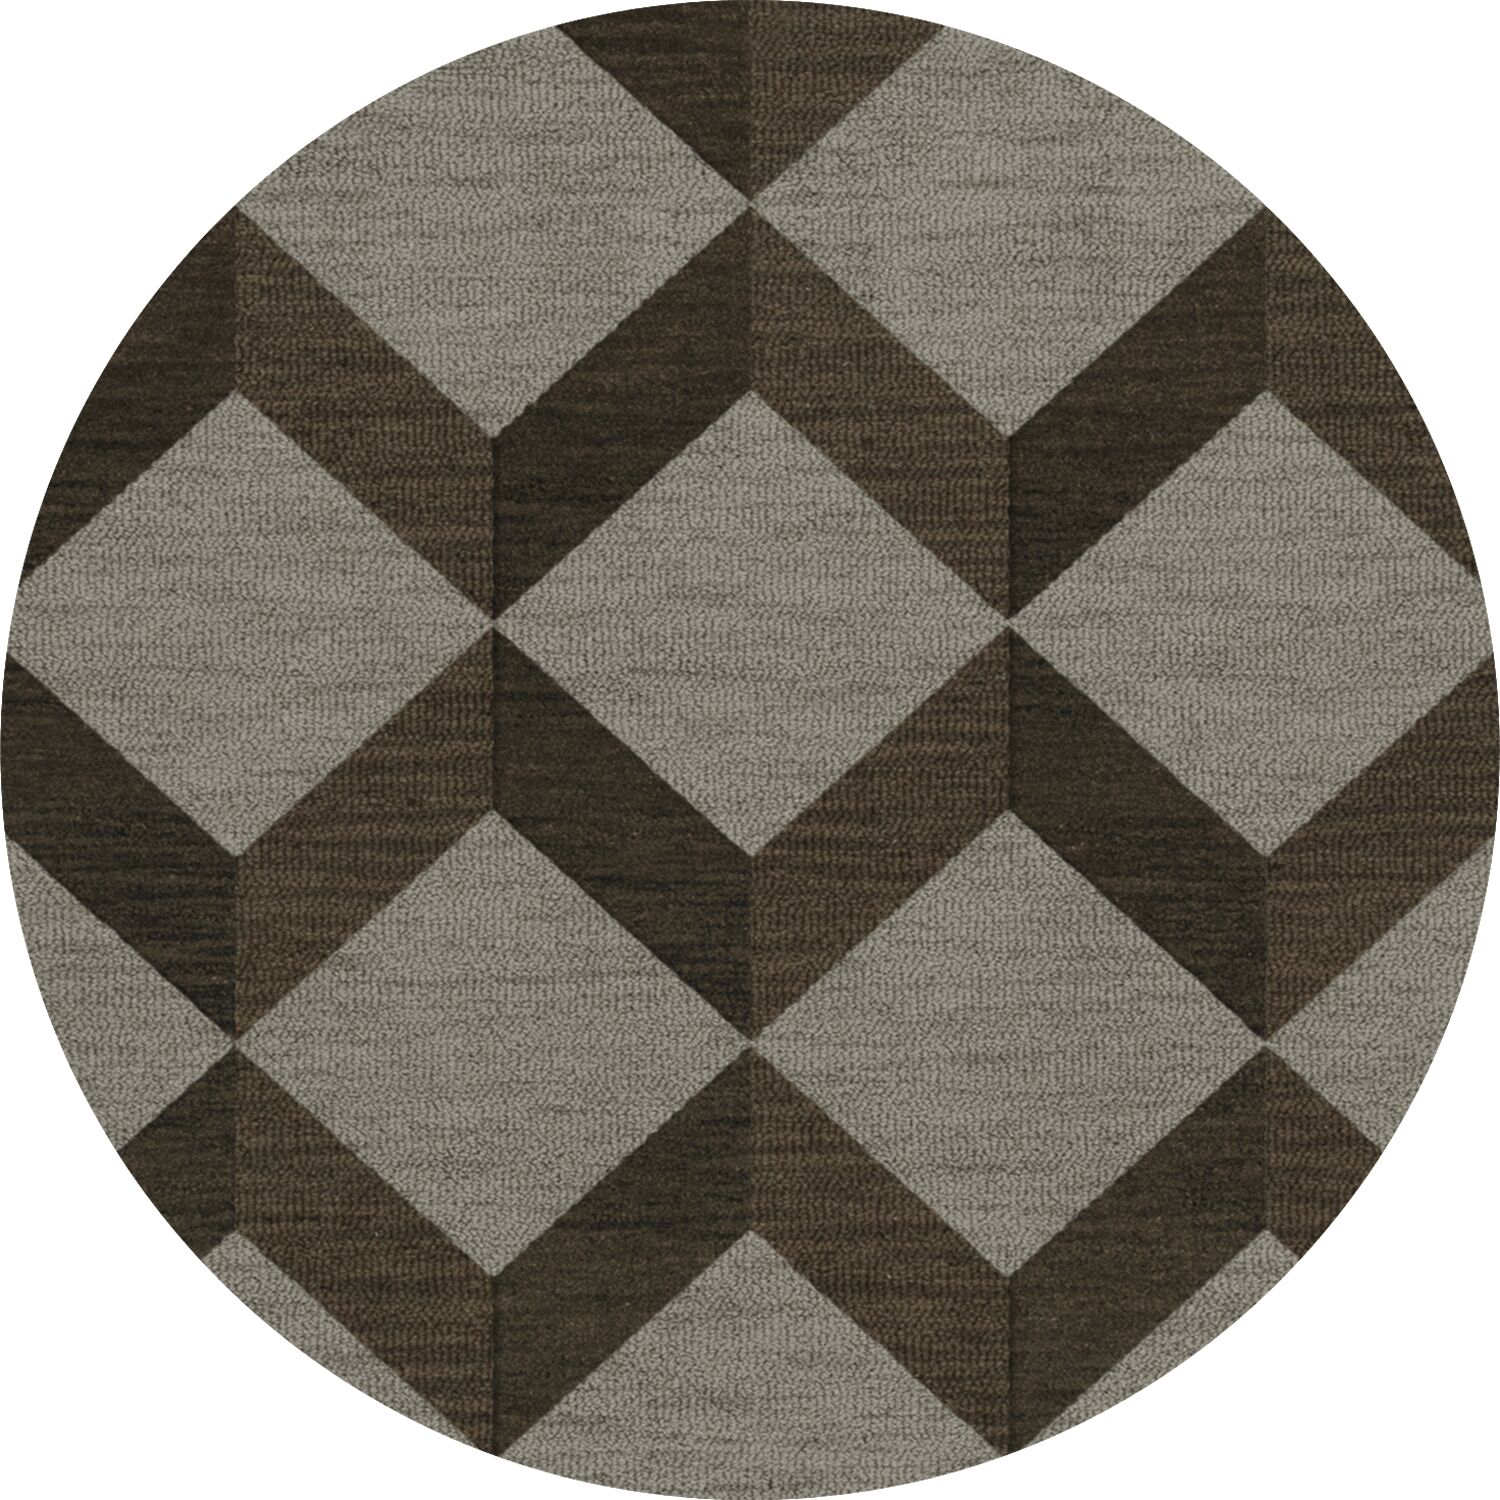 Bella Machine Woven Wool Brown/Gray Area Rug Rug Size: Round 12'